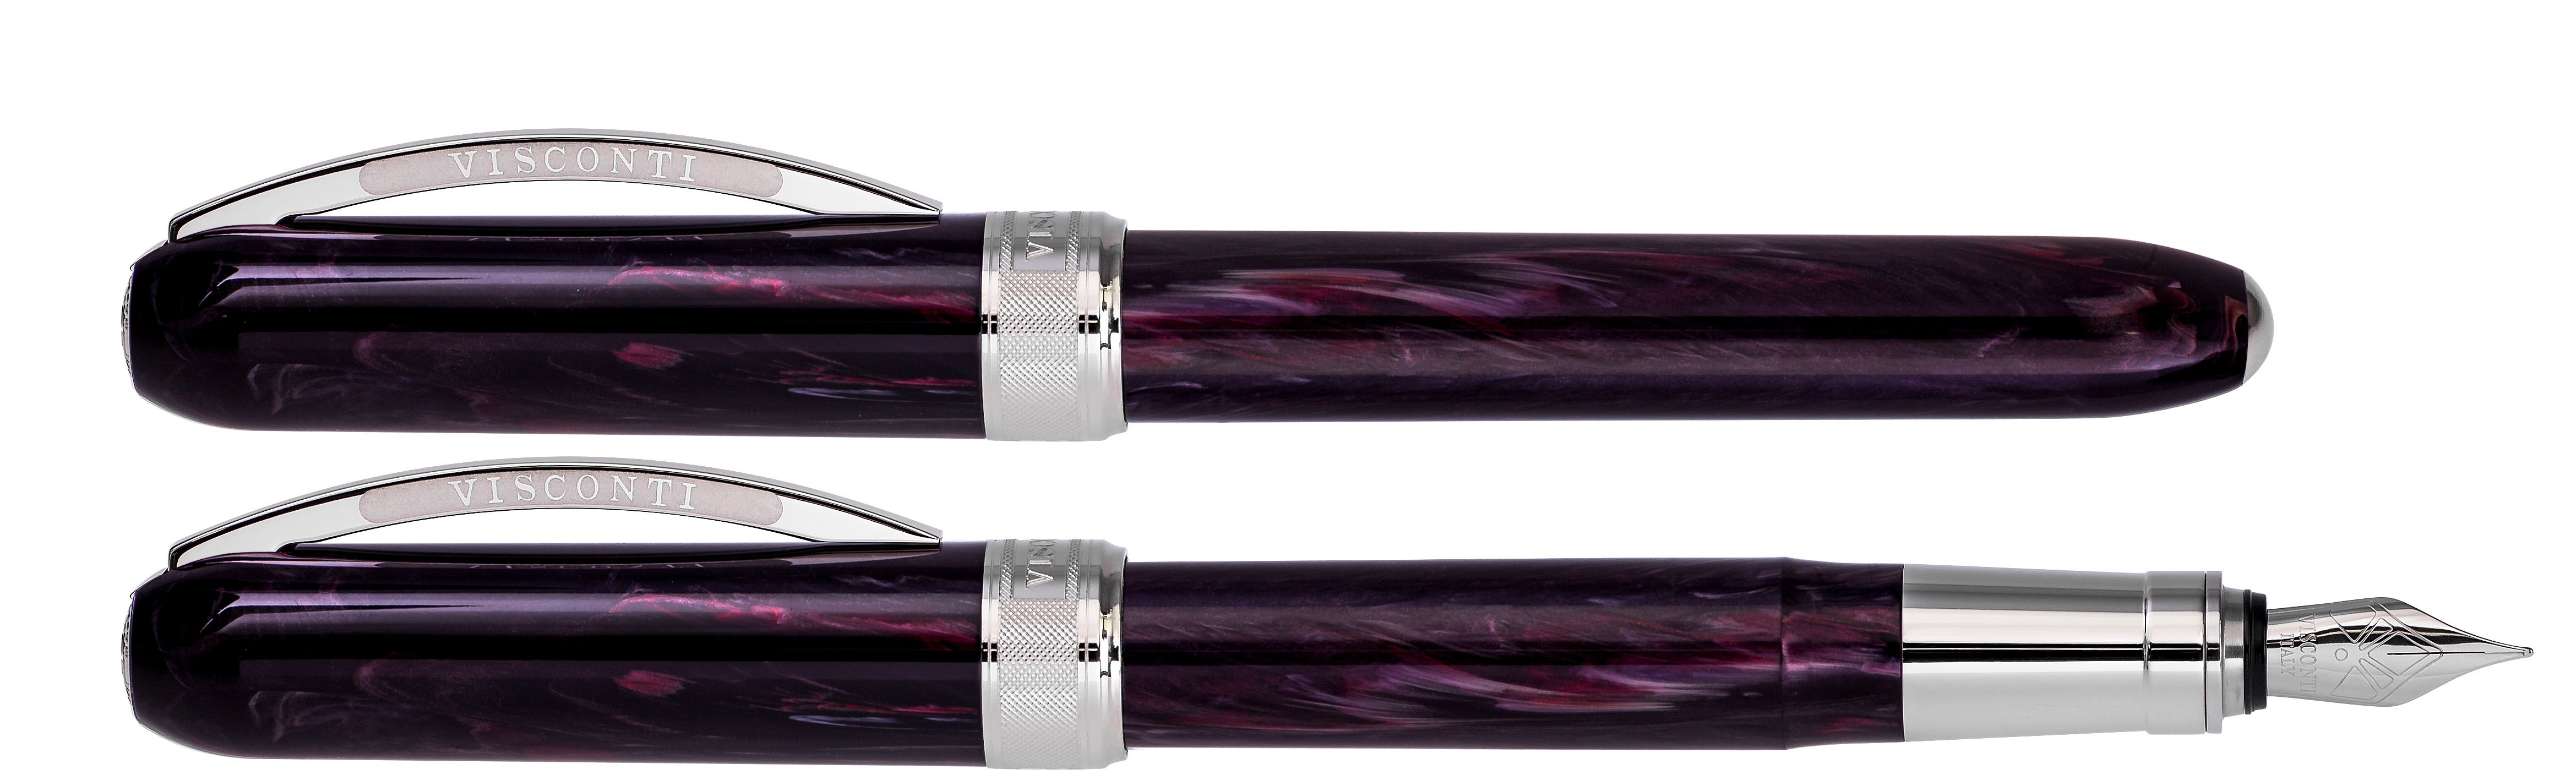 Visconti Rembrandt - Twilight